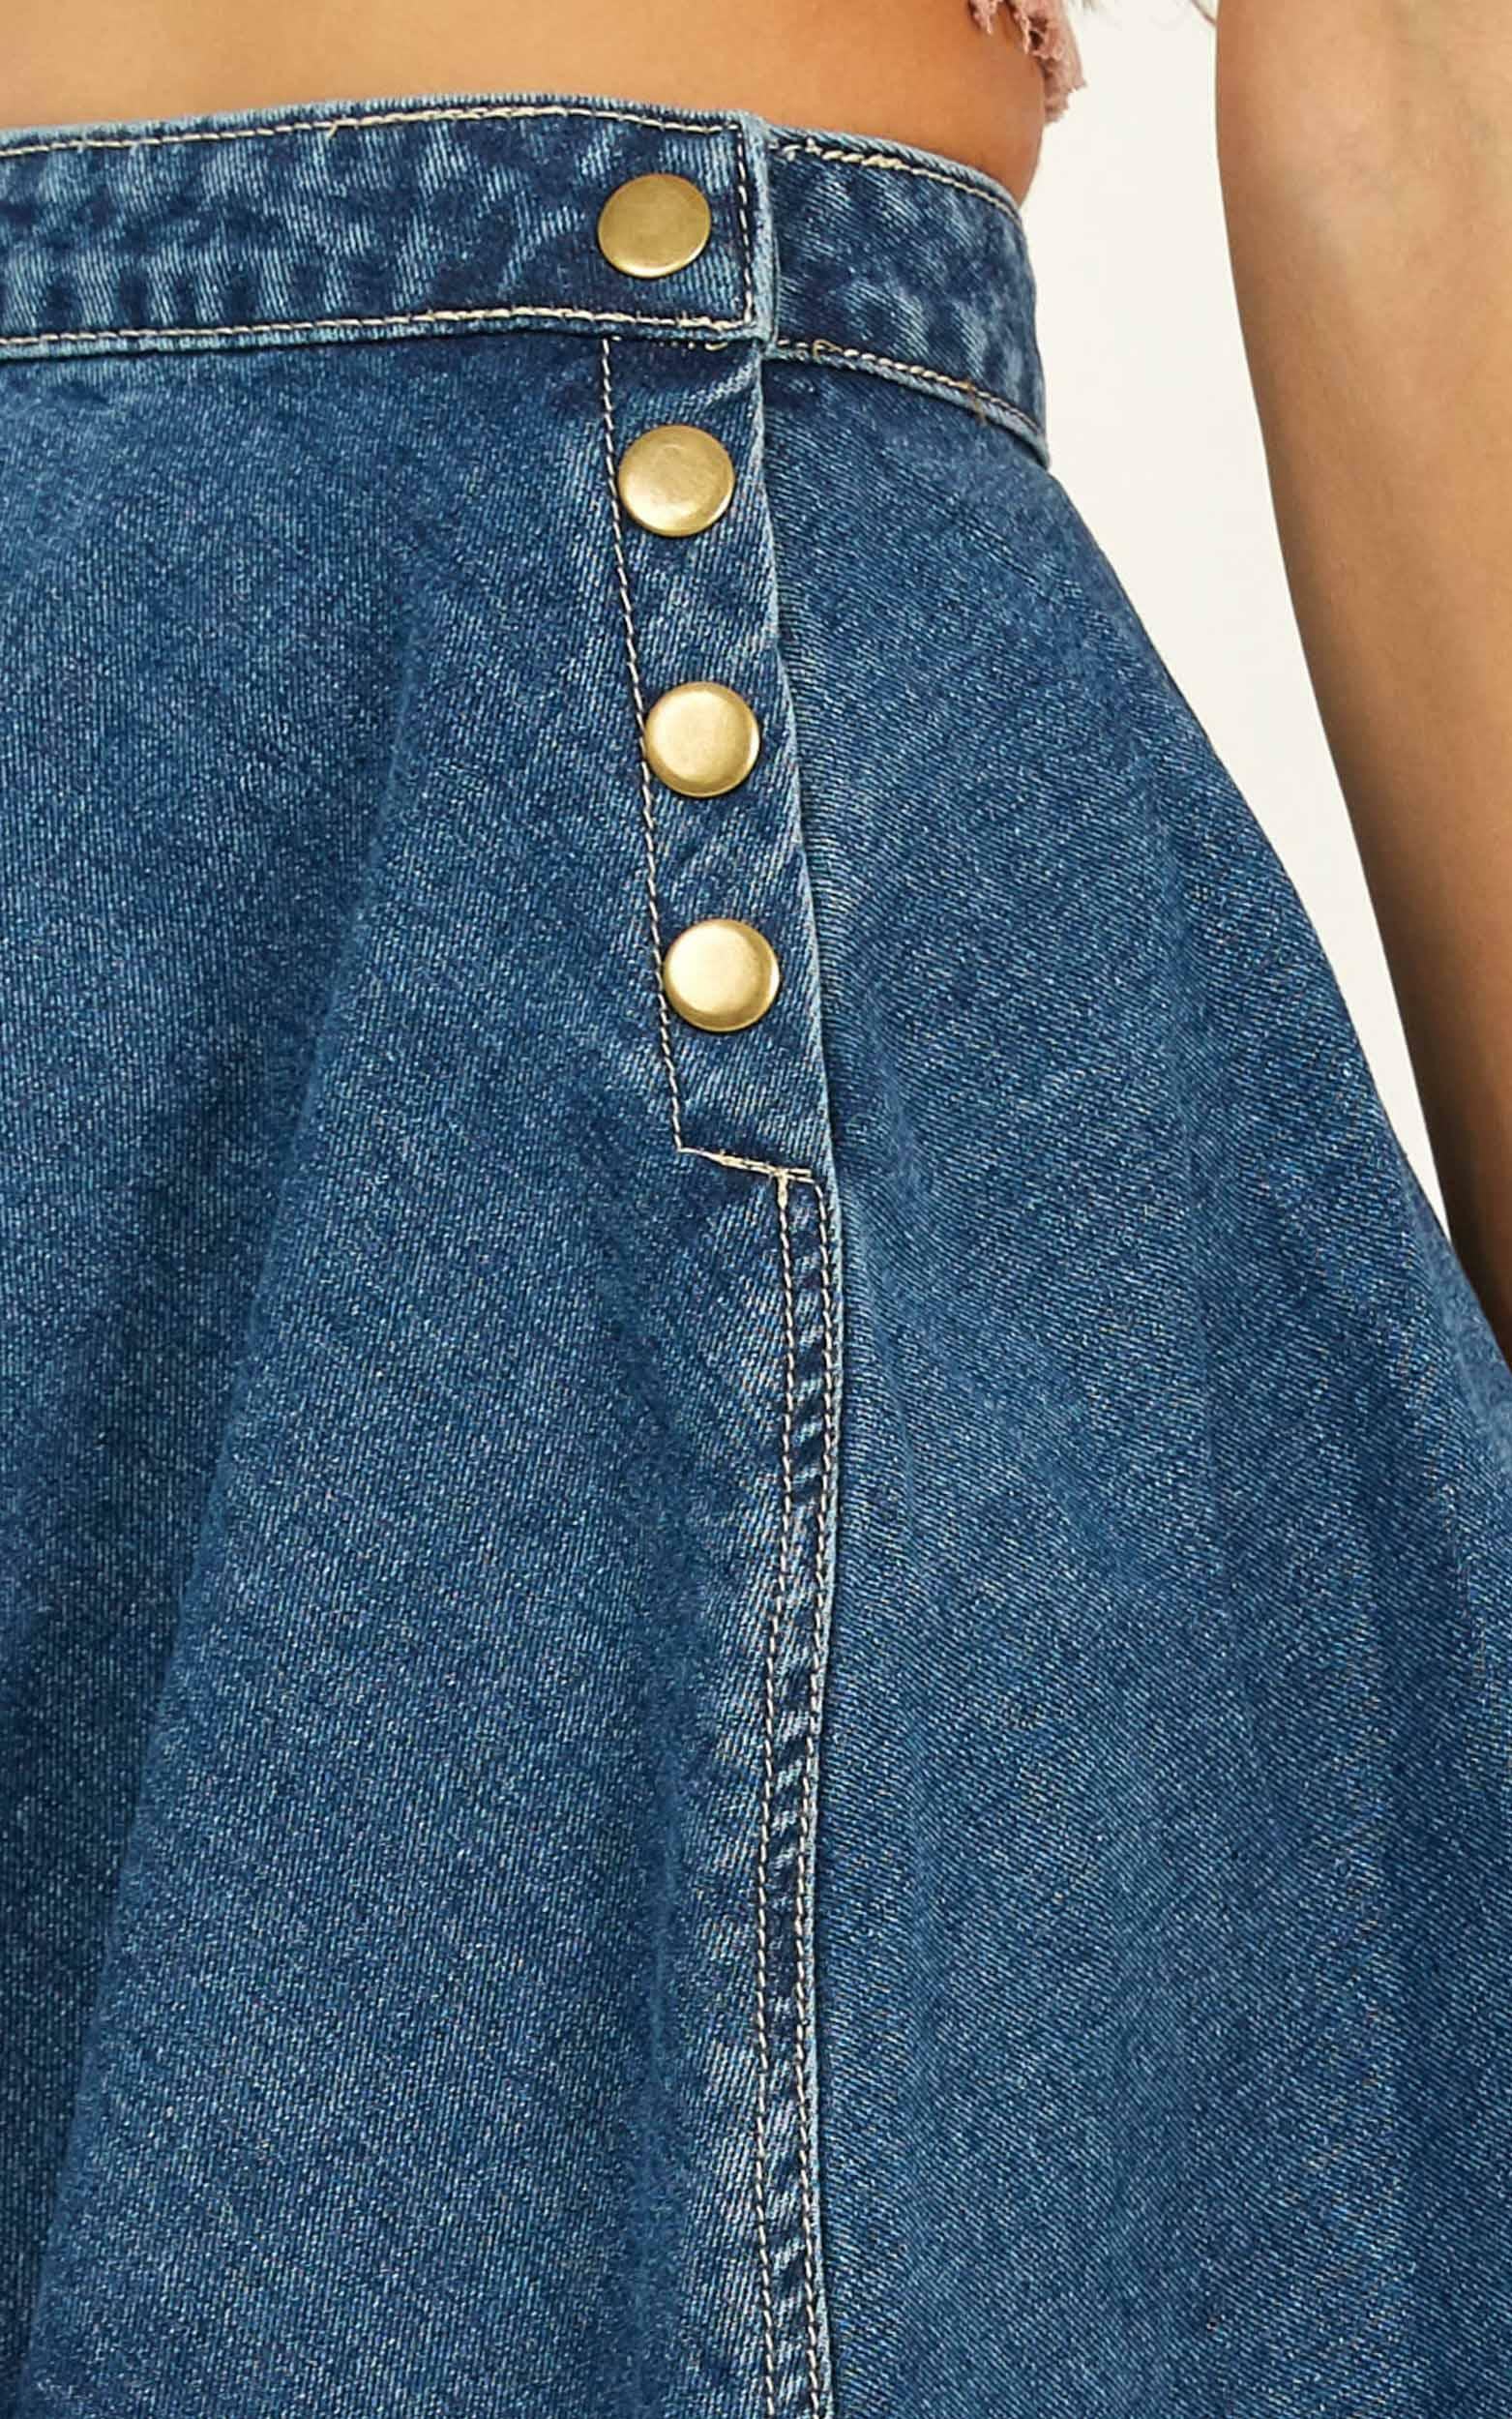 By The Campfire Denim Skirt In mid wash - 12 (L), Blue, hi-res image number null